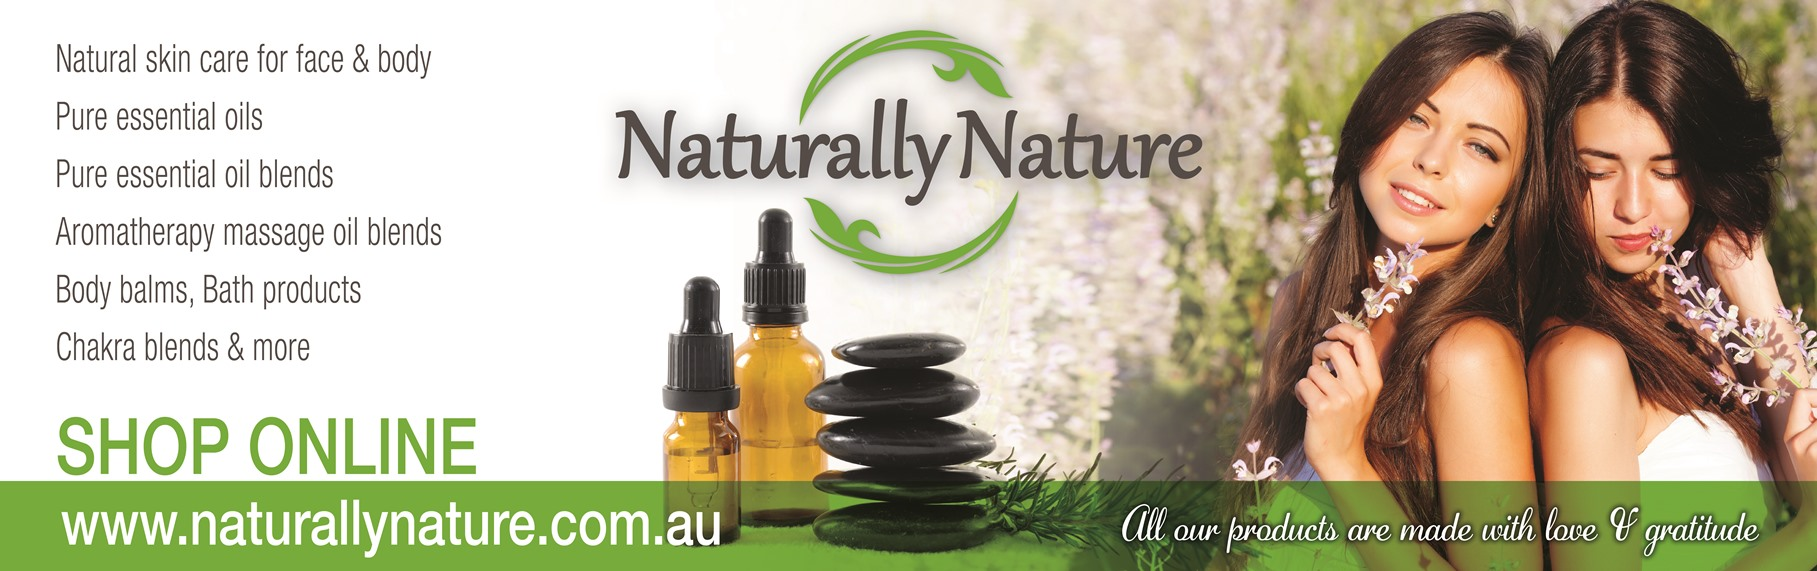 Naturally Nature, pure Essential Oils, Aromatherapy products